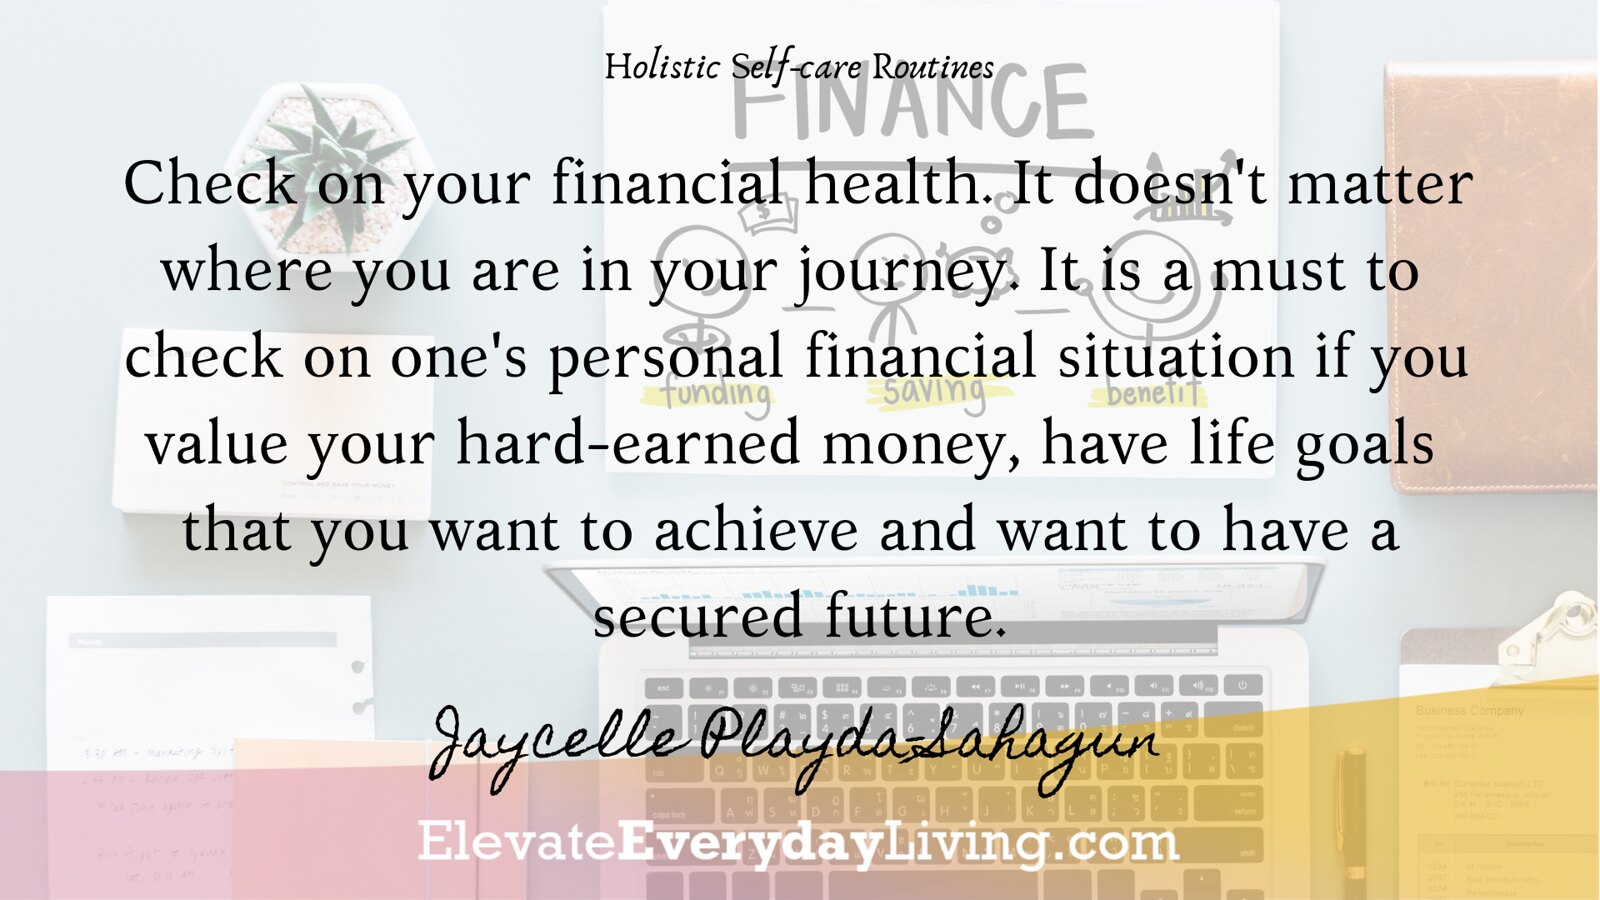 Check on your financial health